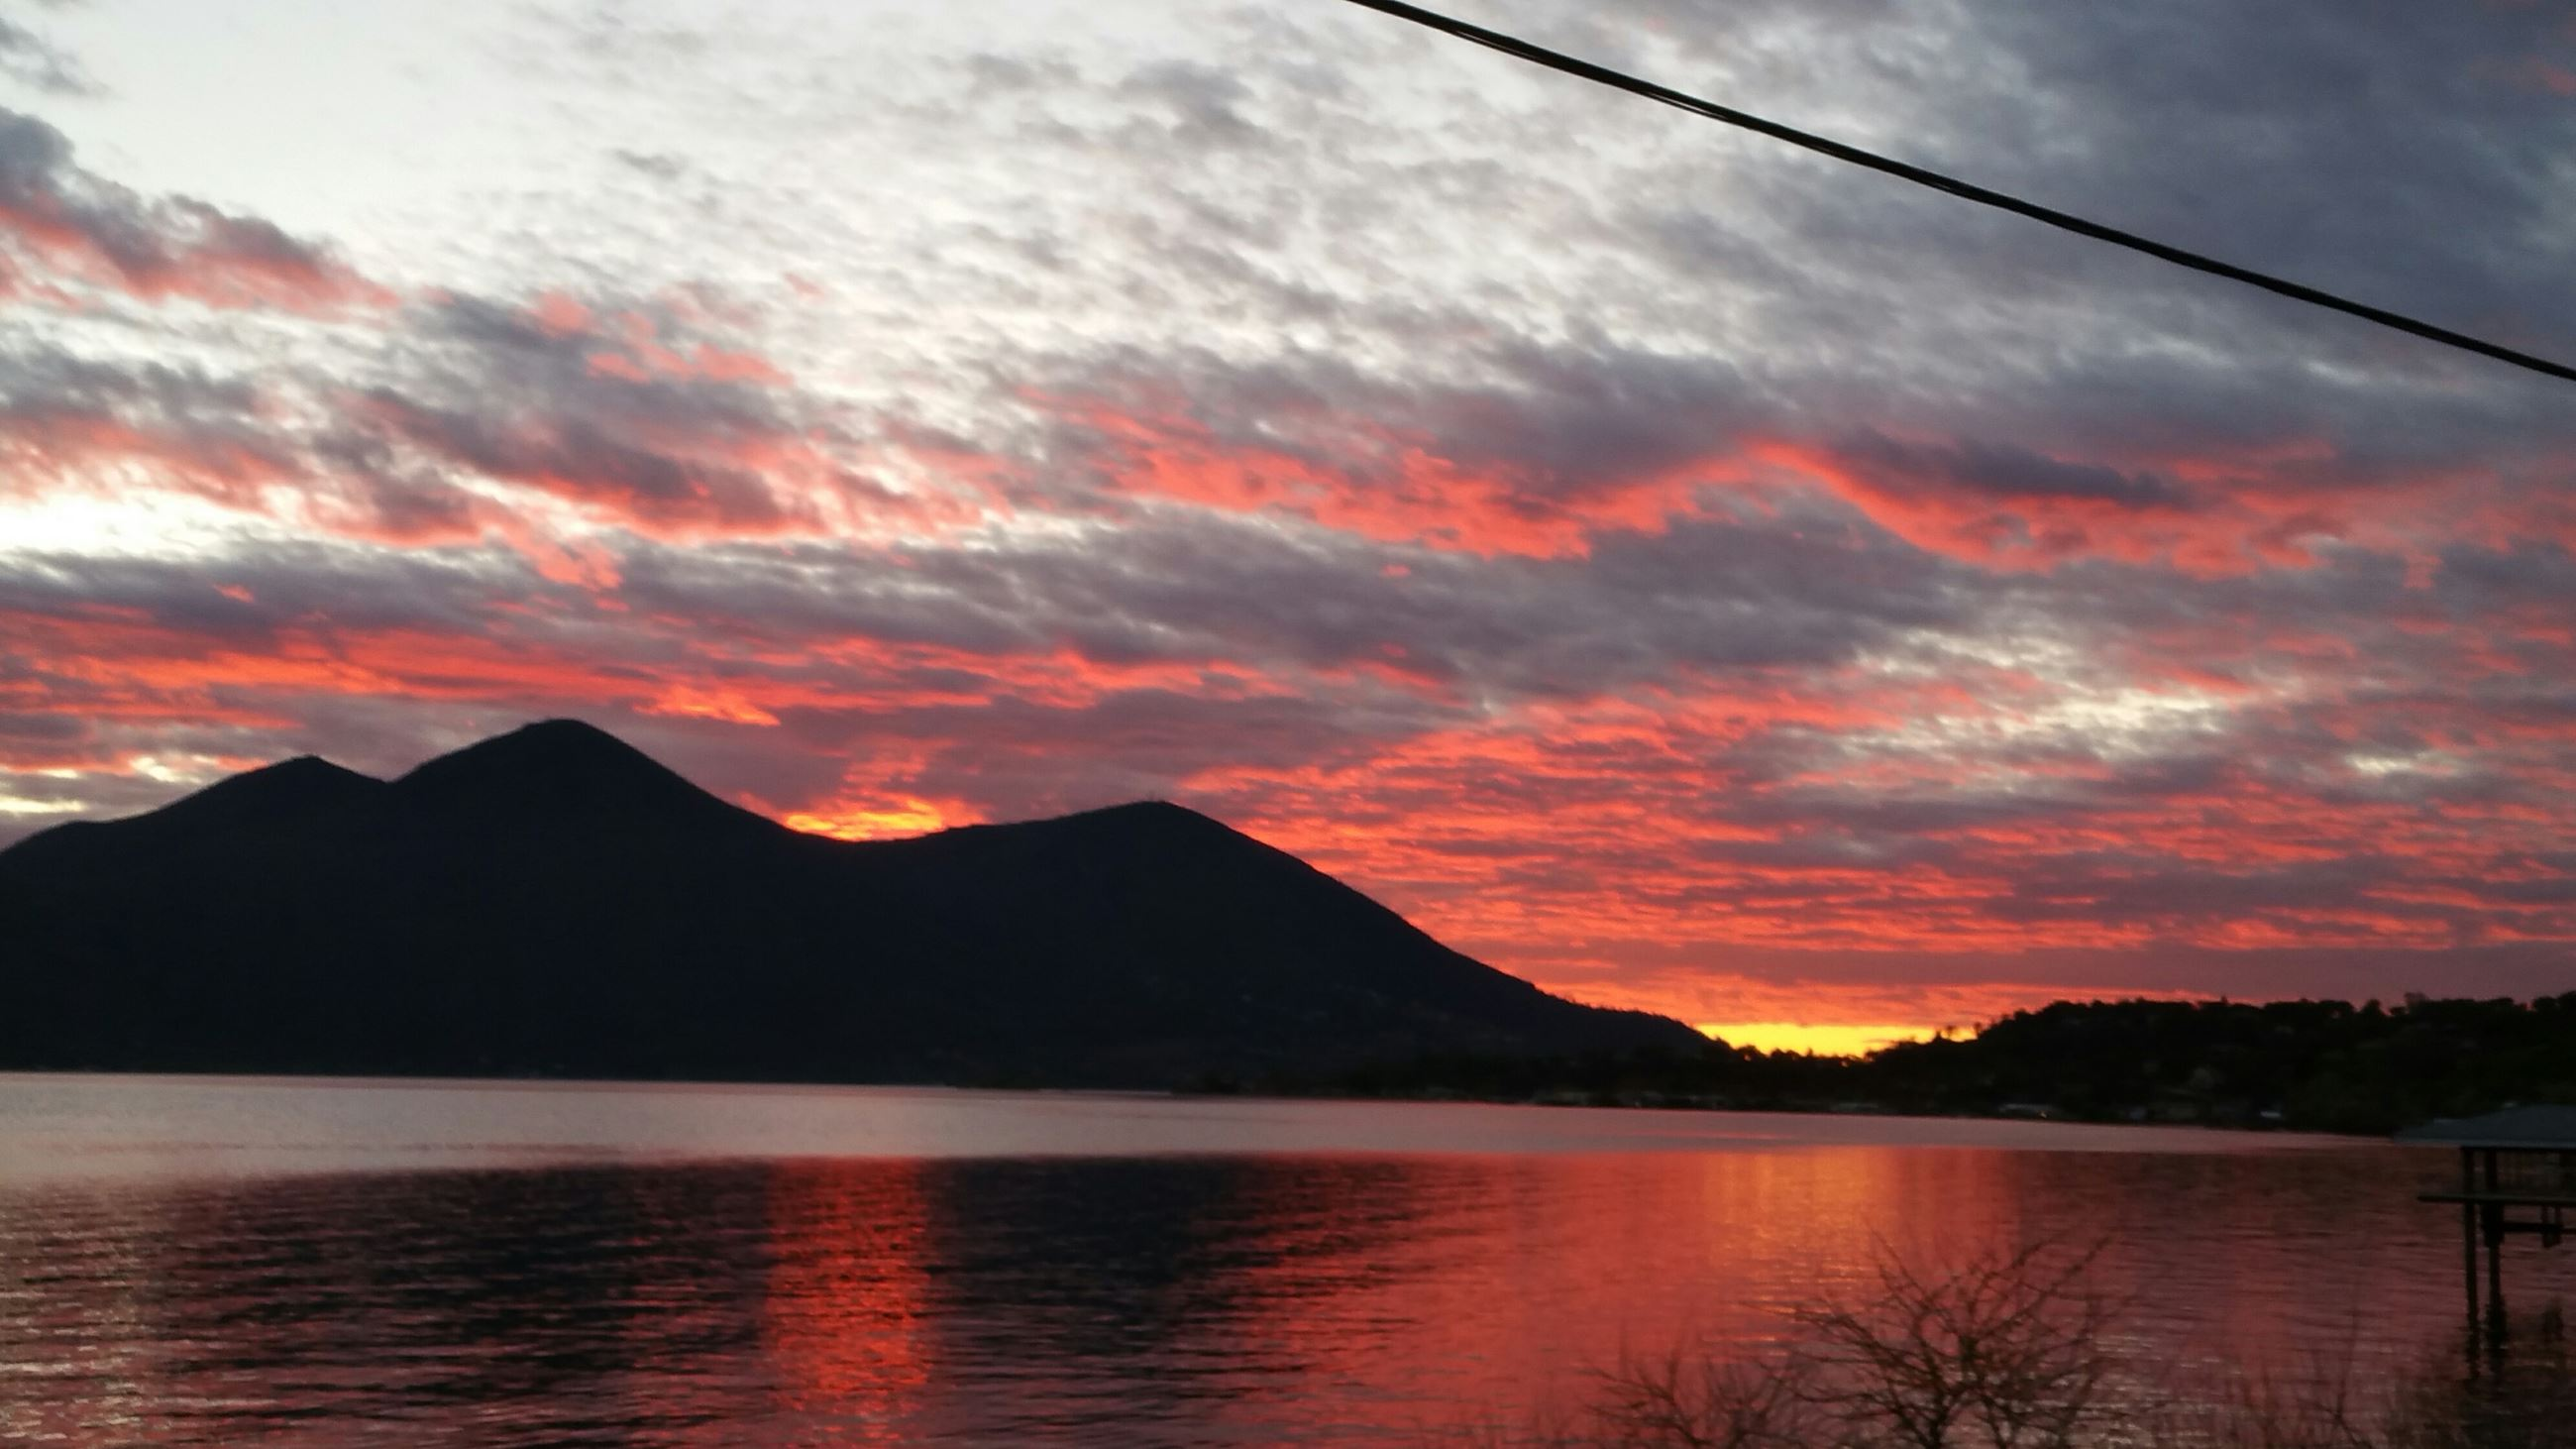 Photo of Clearlake at Sunset with View of Mt. Konocti